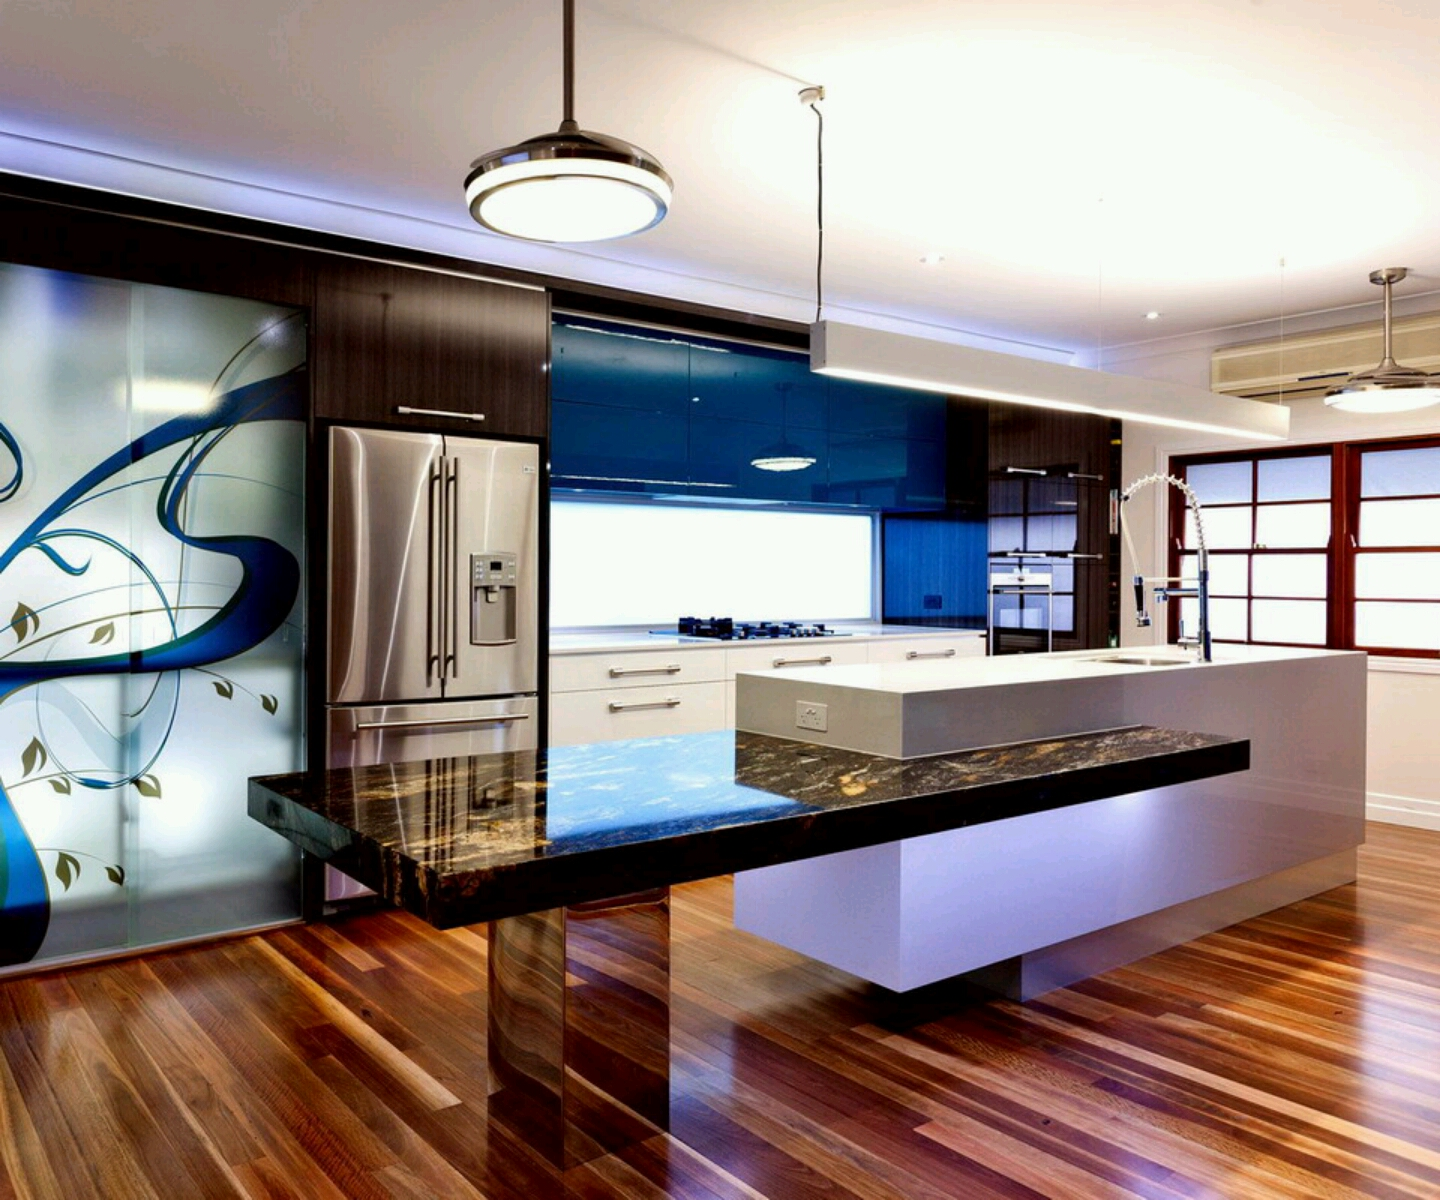 Ultra modern kitchen designs ideas new home designs - Home kitchen design ideas ...